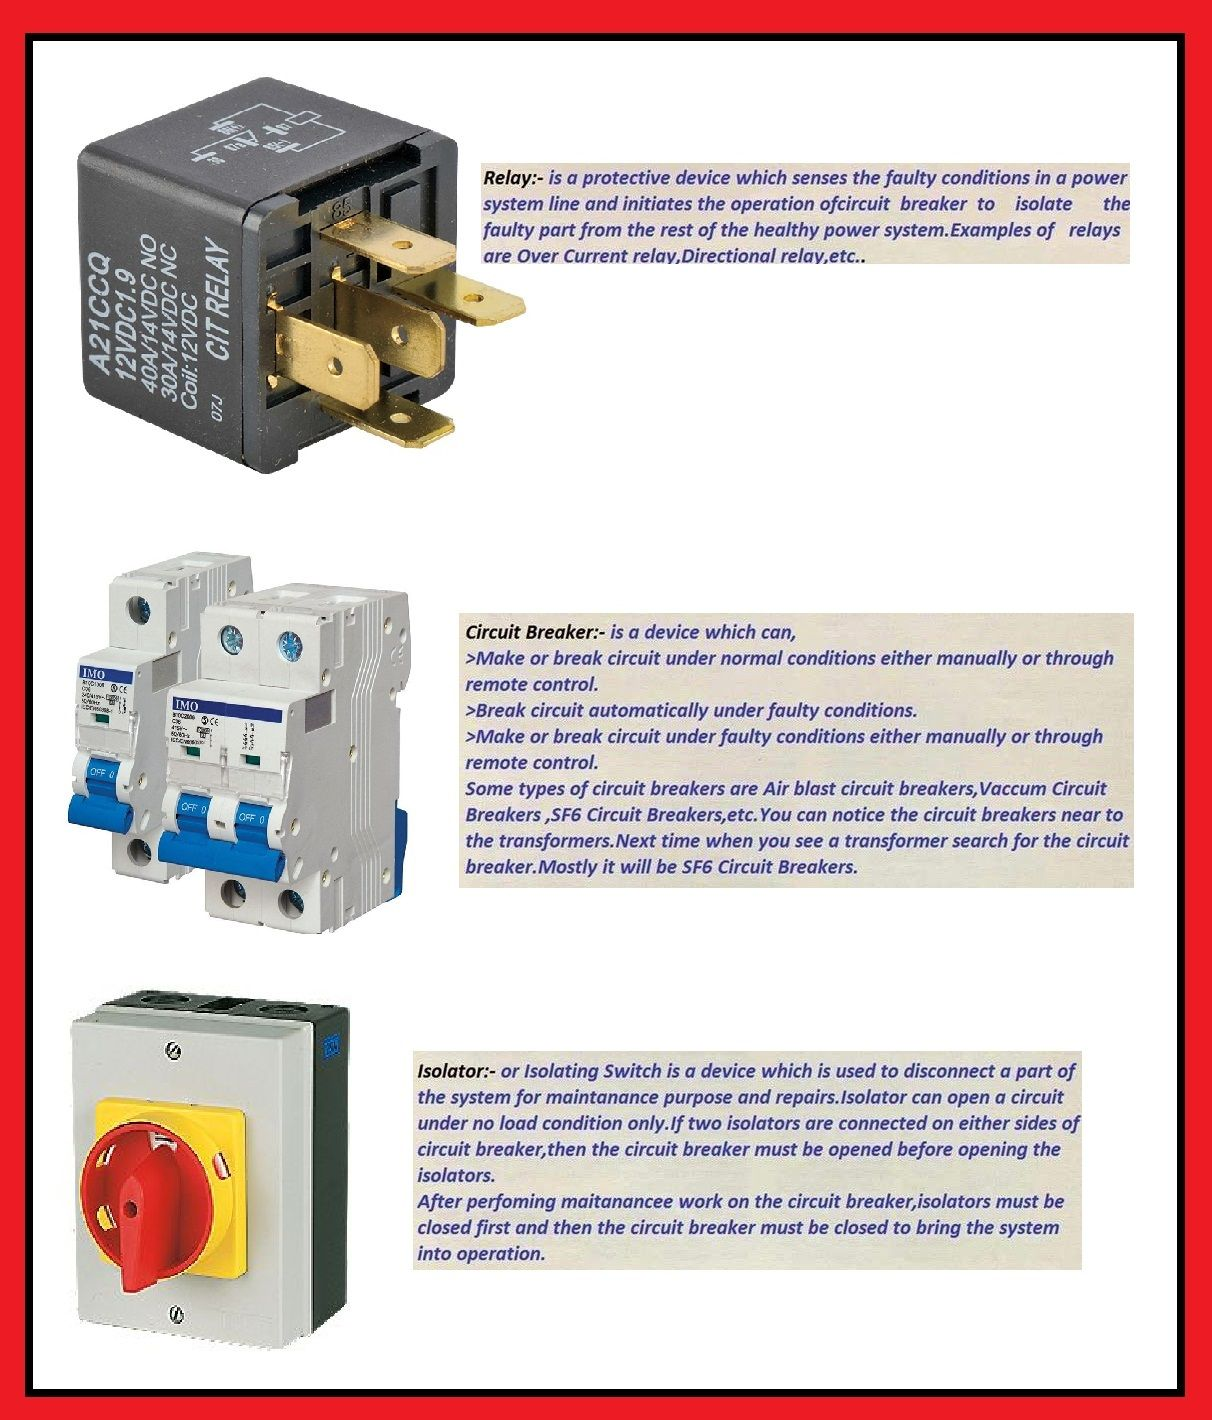 medium resolution of what is the difference between relay circuit breaker and isolator elec eng world